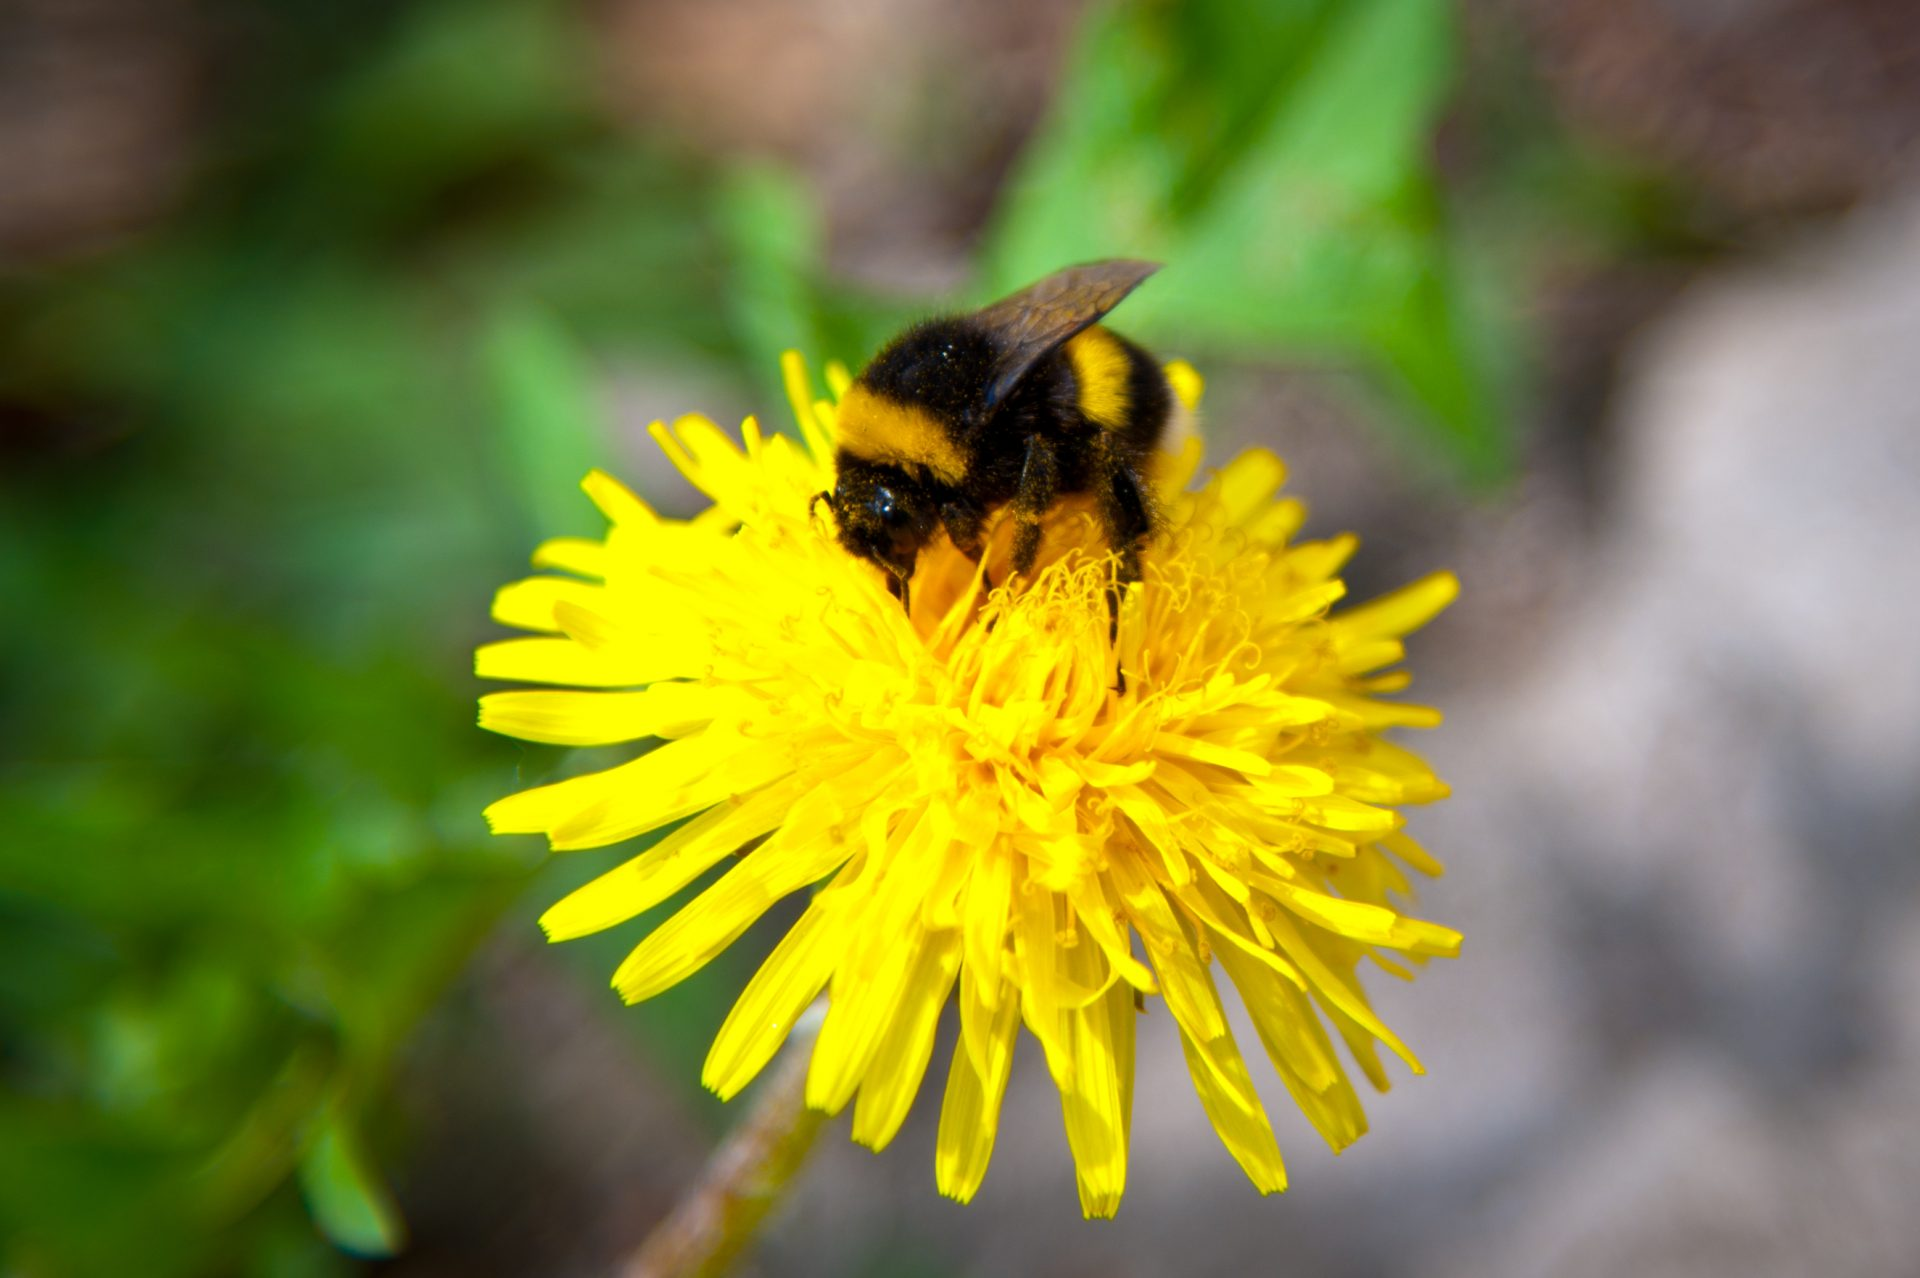 Rusty-patched bumblebee on a dandelion